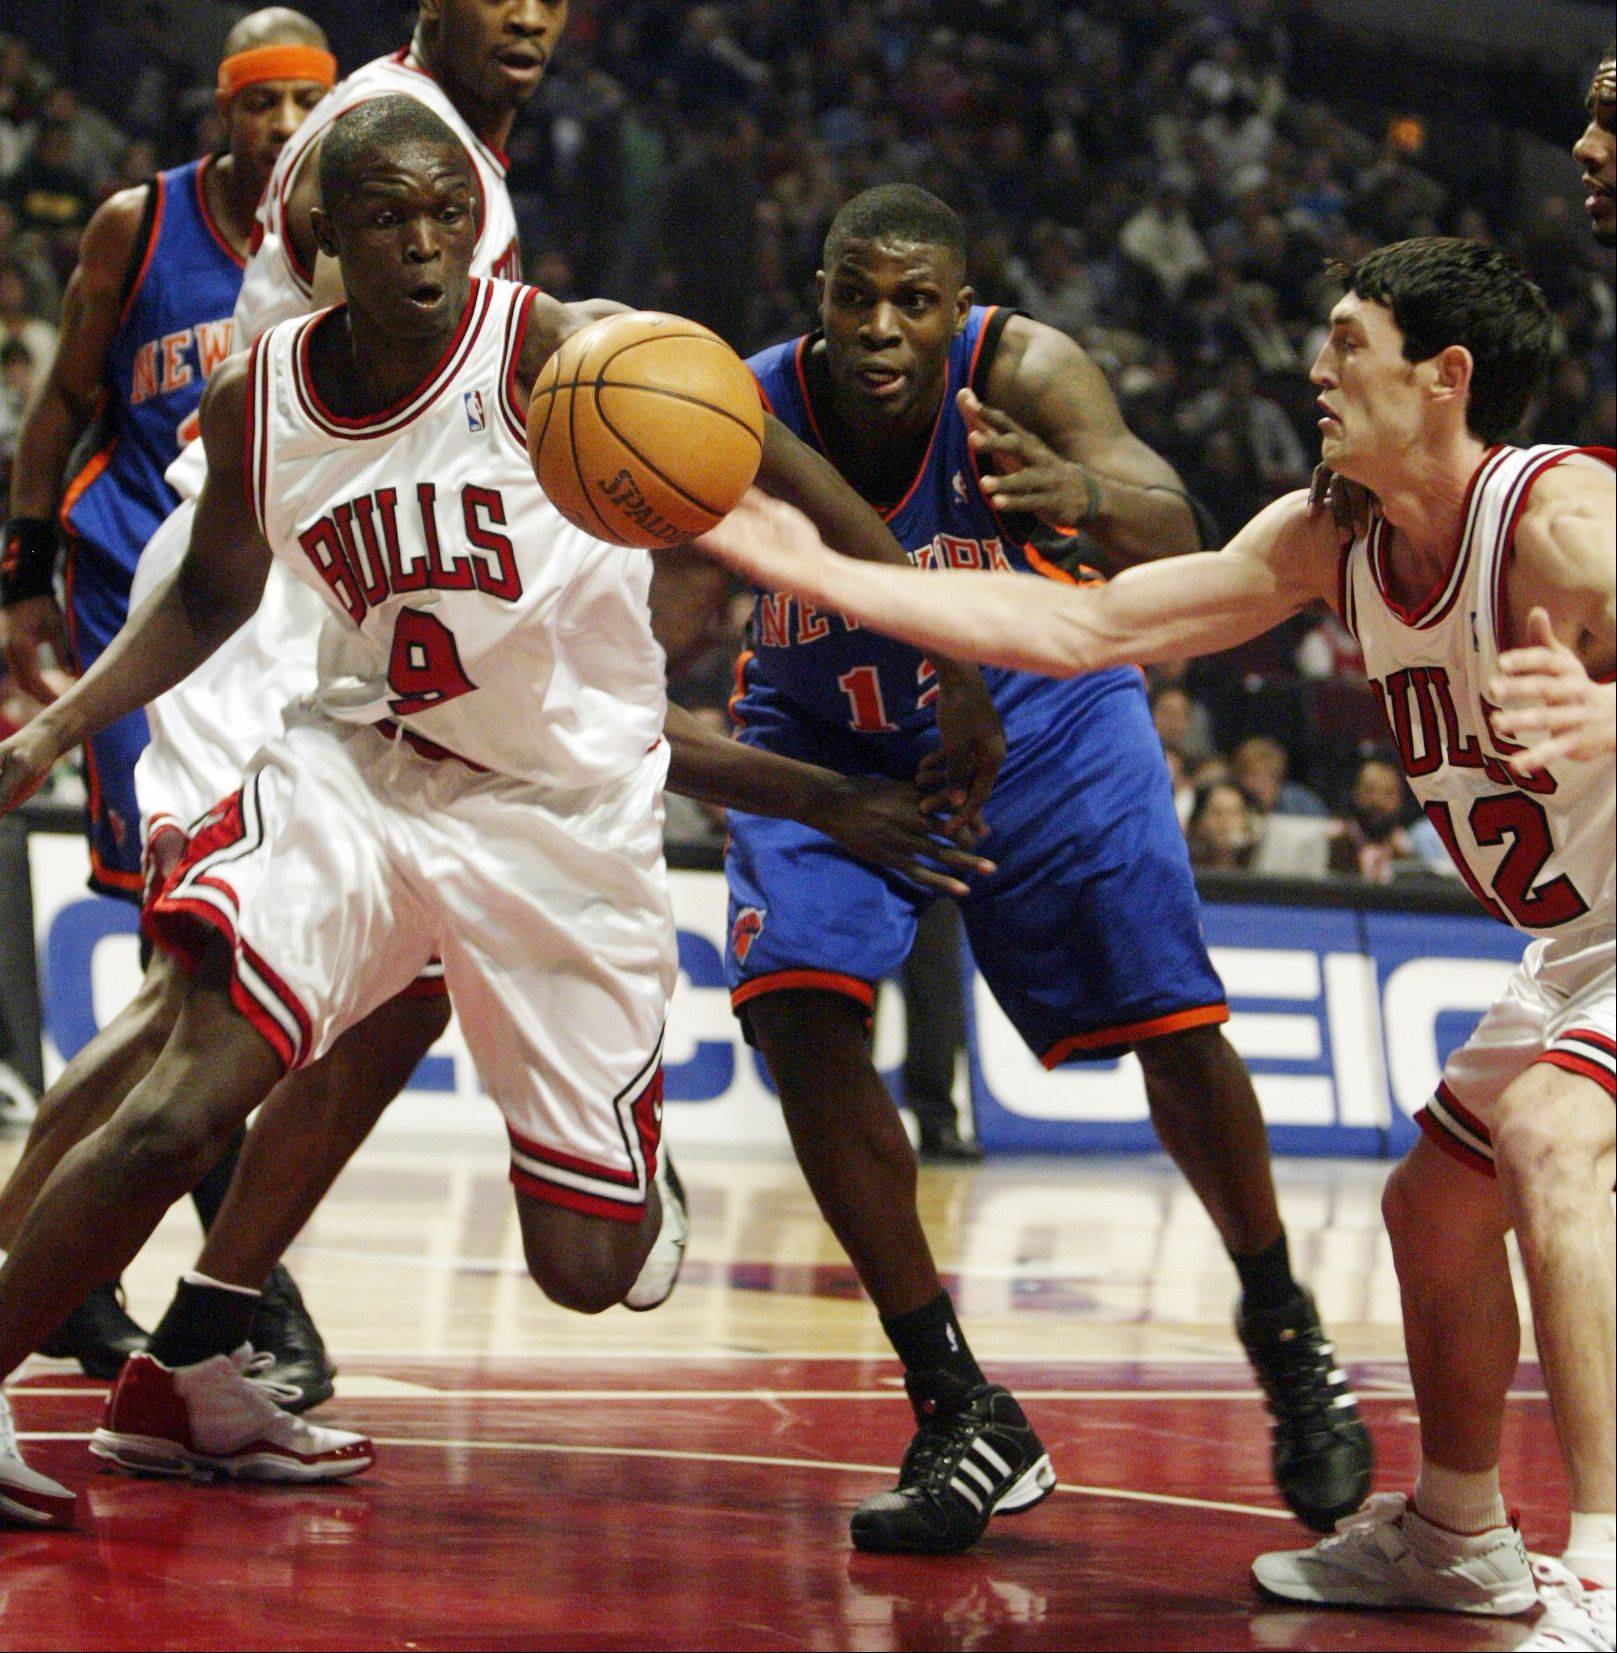 Nazr Mohammed, here facing the Bulls� Luol Deng, left, and Kirk Hinrich in 2005 as a member of the New York Knicks, is excited about the Bulls� preseason opener Tuesday night at the United Center.